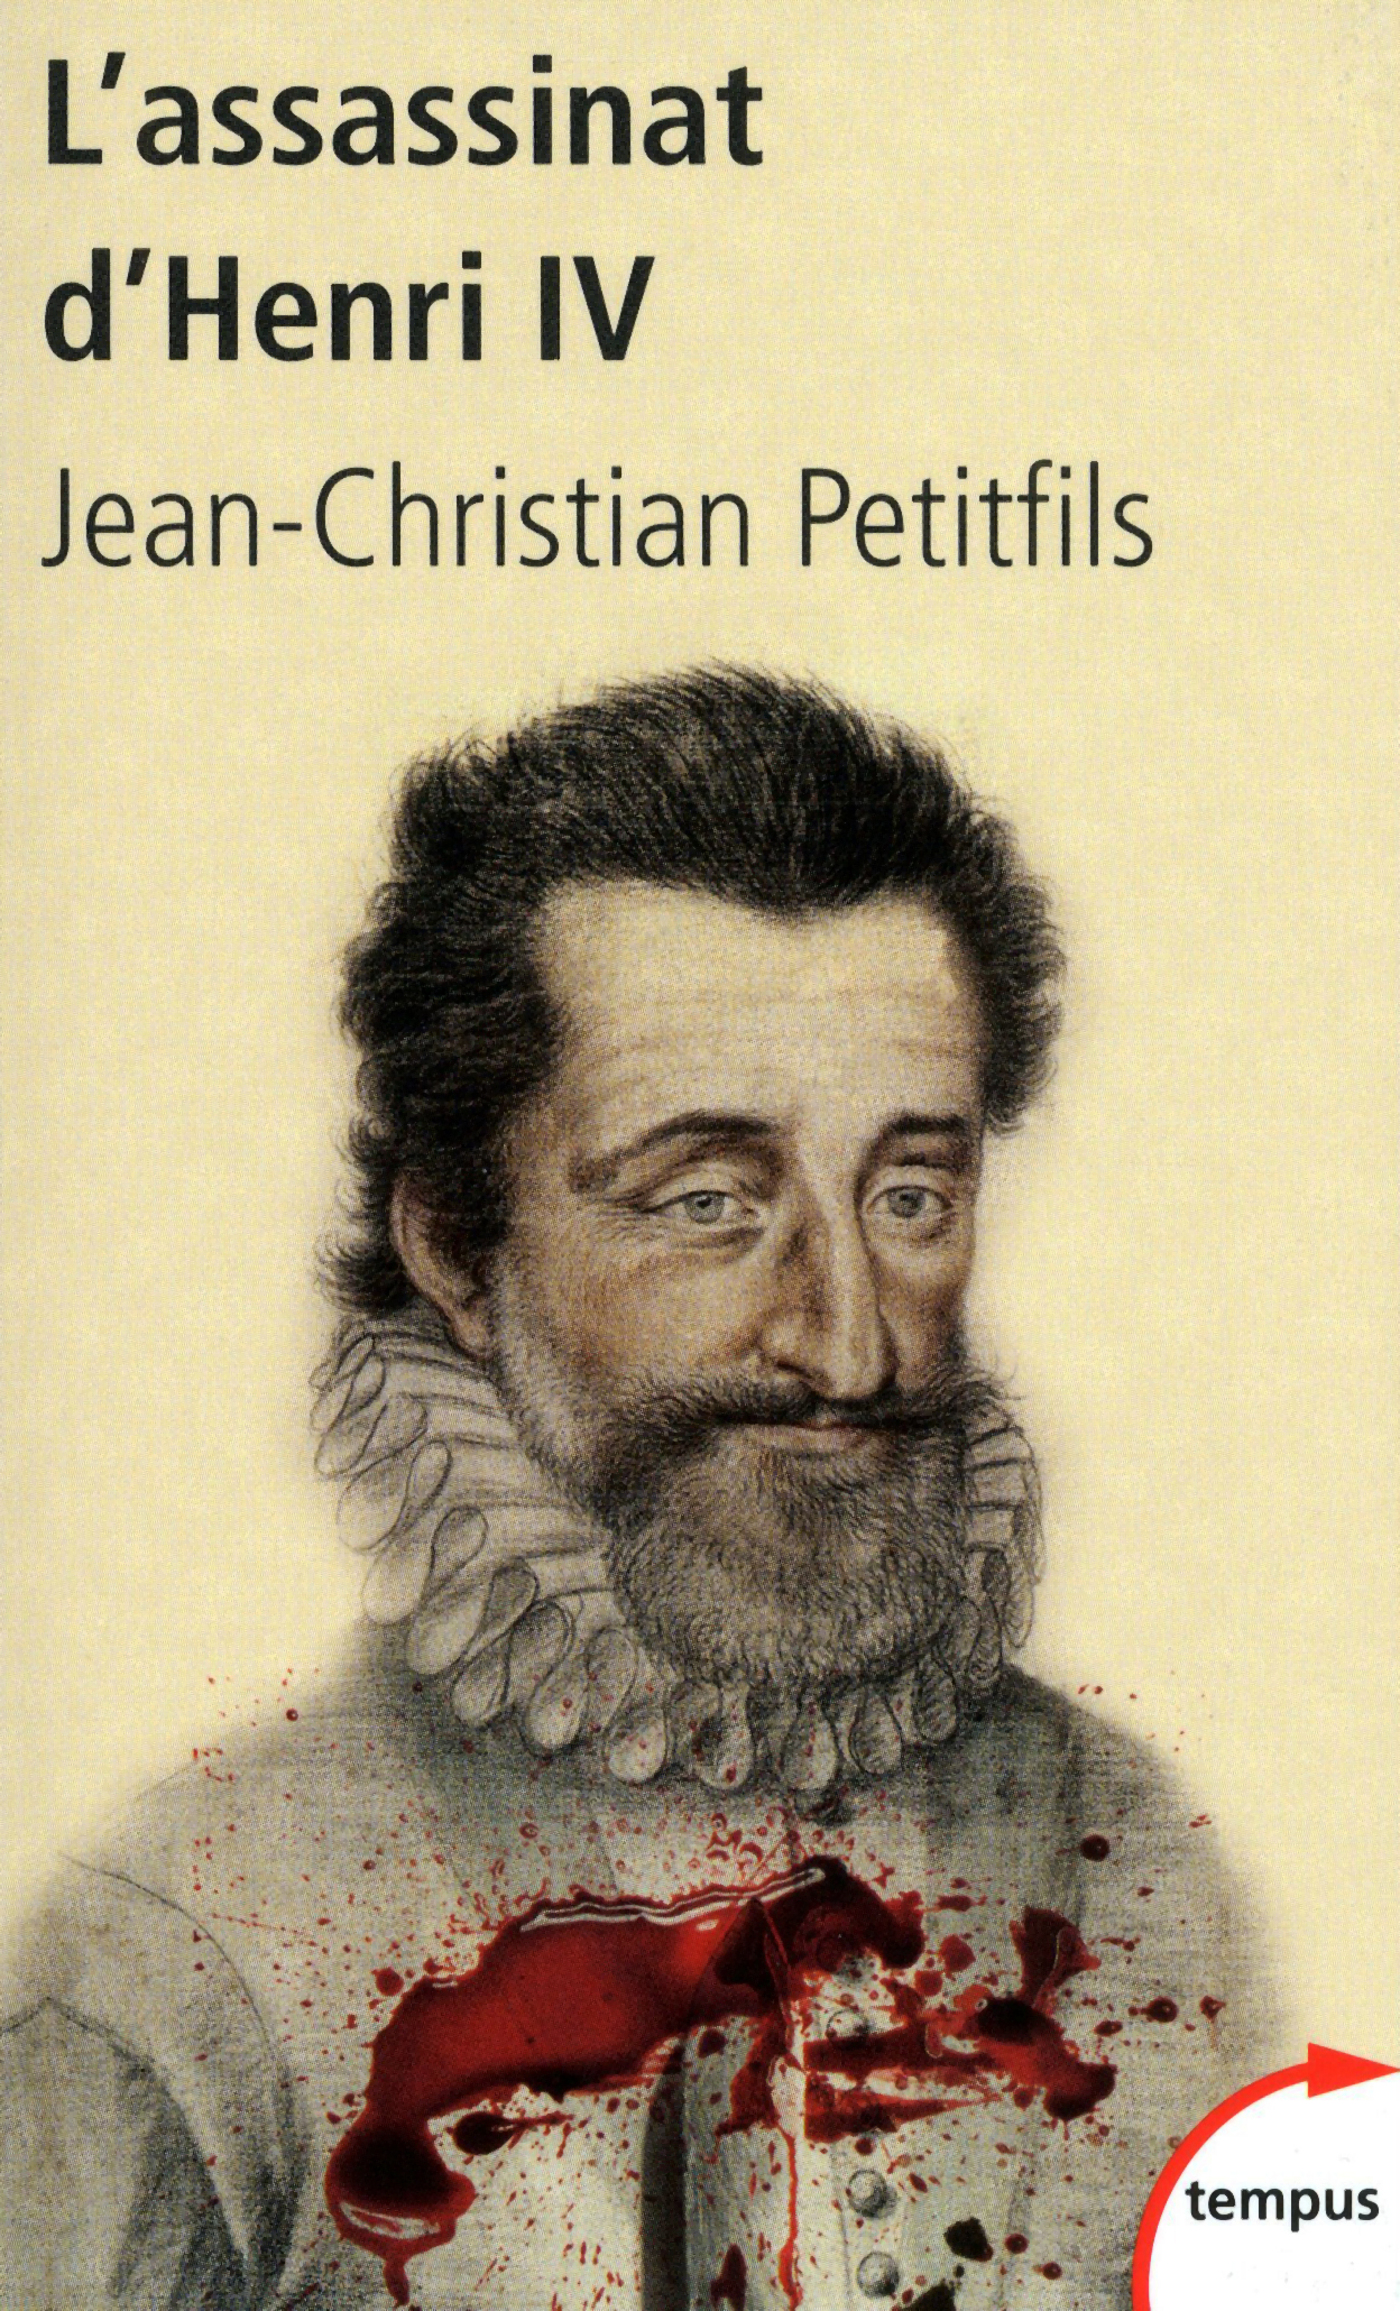 ASSASSINAT D'HENRI IV -L' - Jean-Christian Petitfils